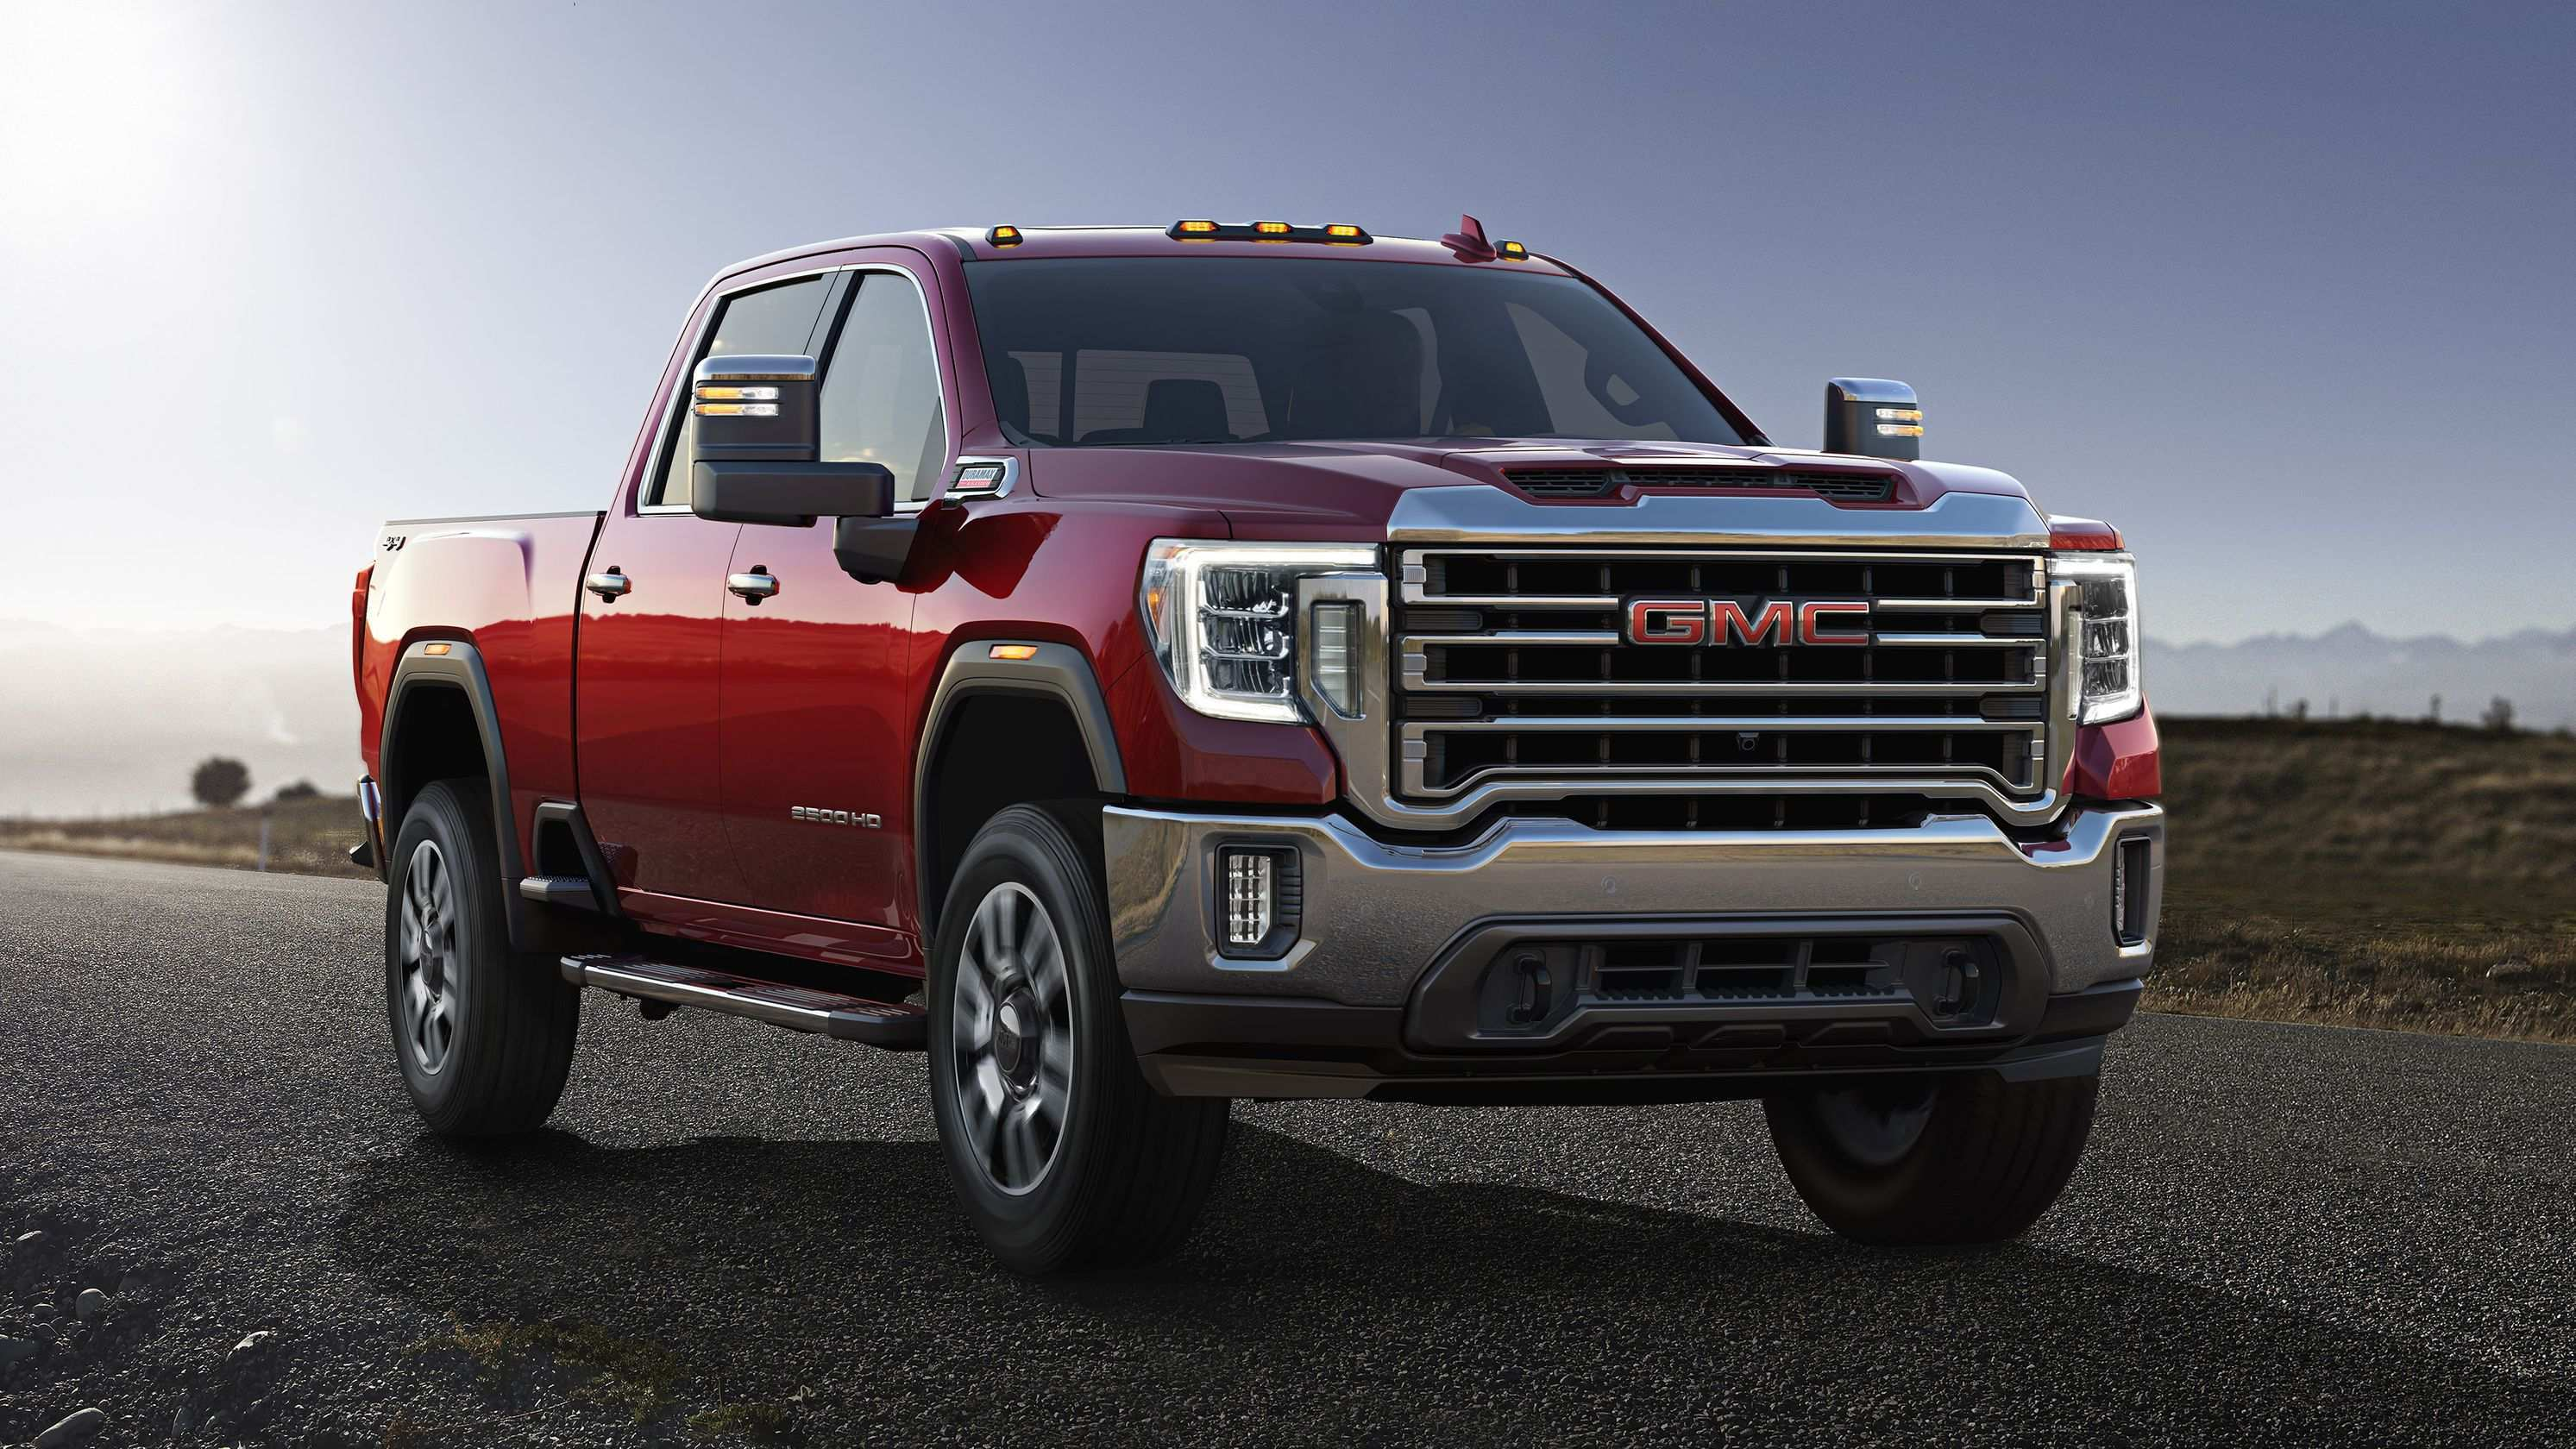 32 The 2020 Gmc 2500Hd Duramax Reviews with 2020 Gmc 2500Hd Duramax